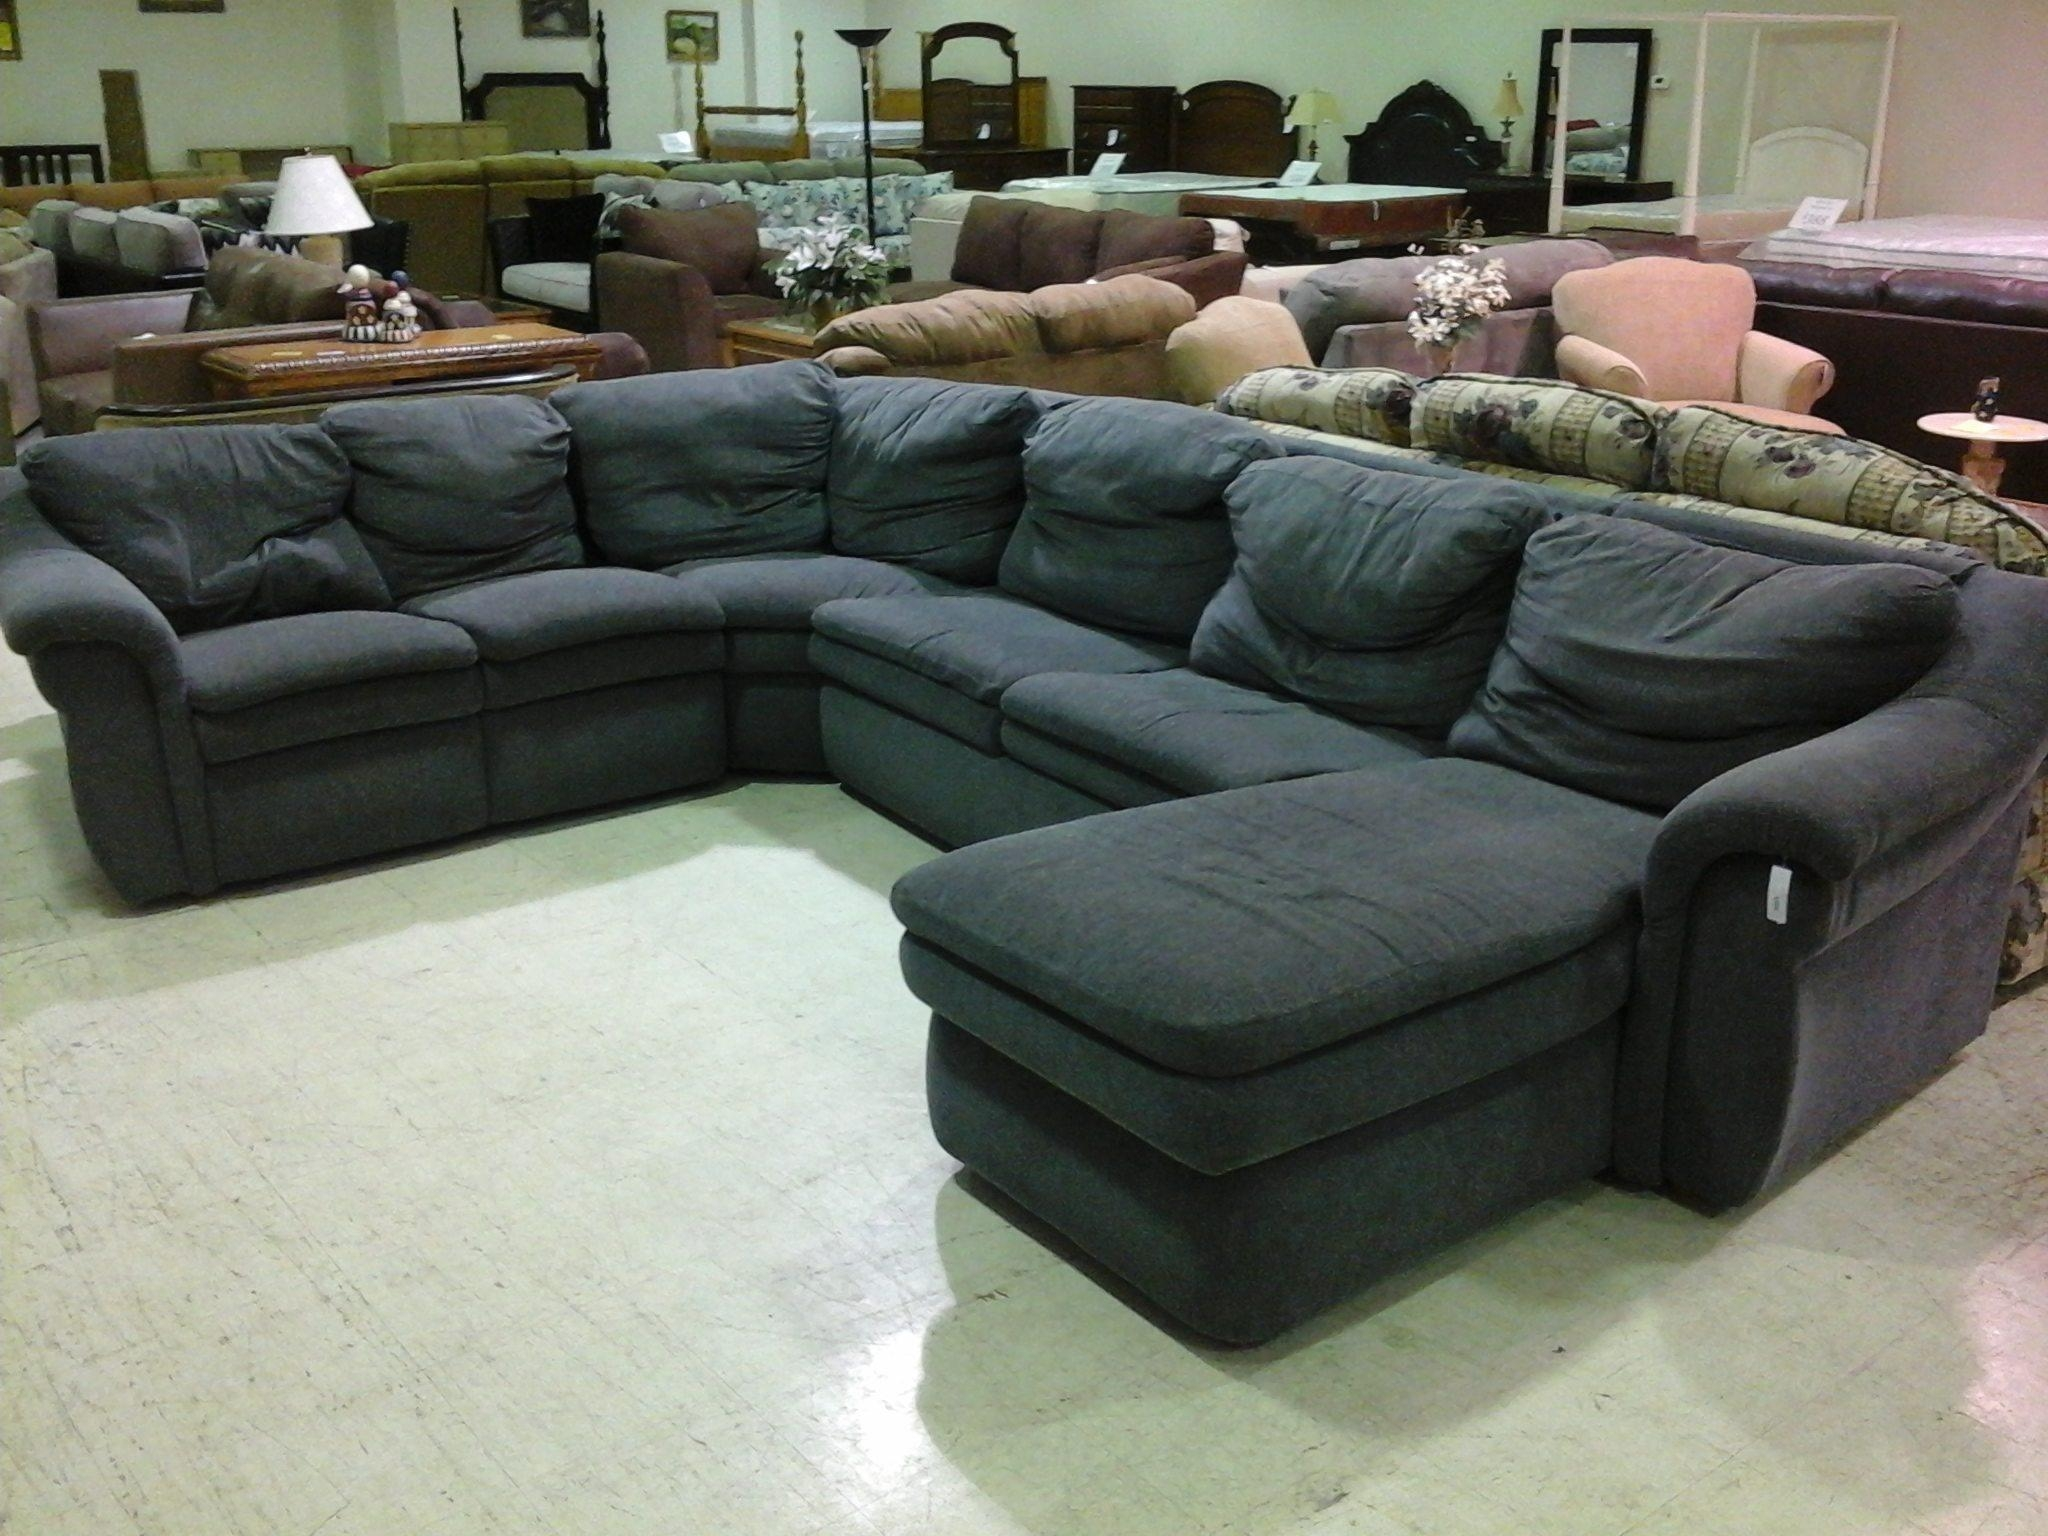 Furniture: Amusing Furniture Decorated L Shaped Sleeper Sofa For Regarding Queen Sofa Sleeper Sectional Microfiber (Image 6 of 20)